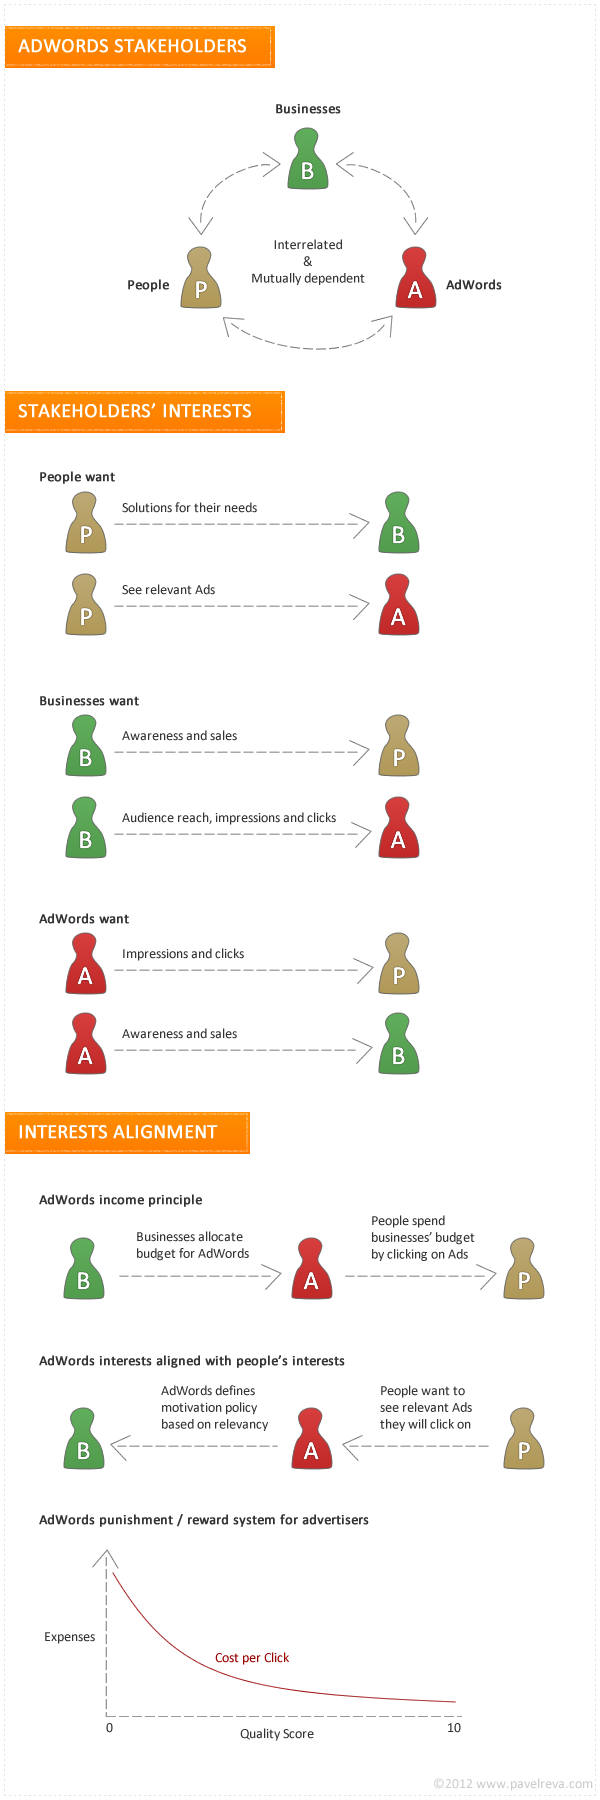 Interests Alignment: AdWords, Advertisers, People